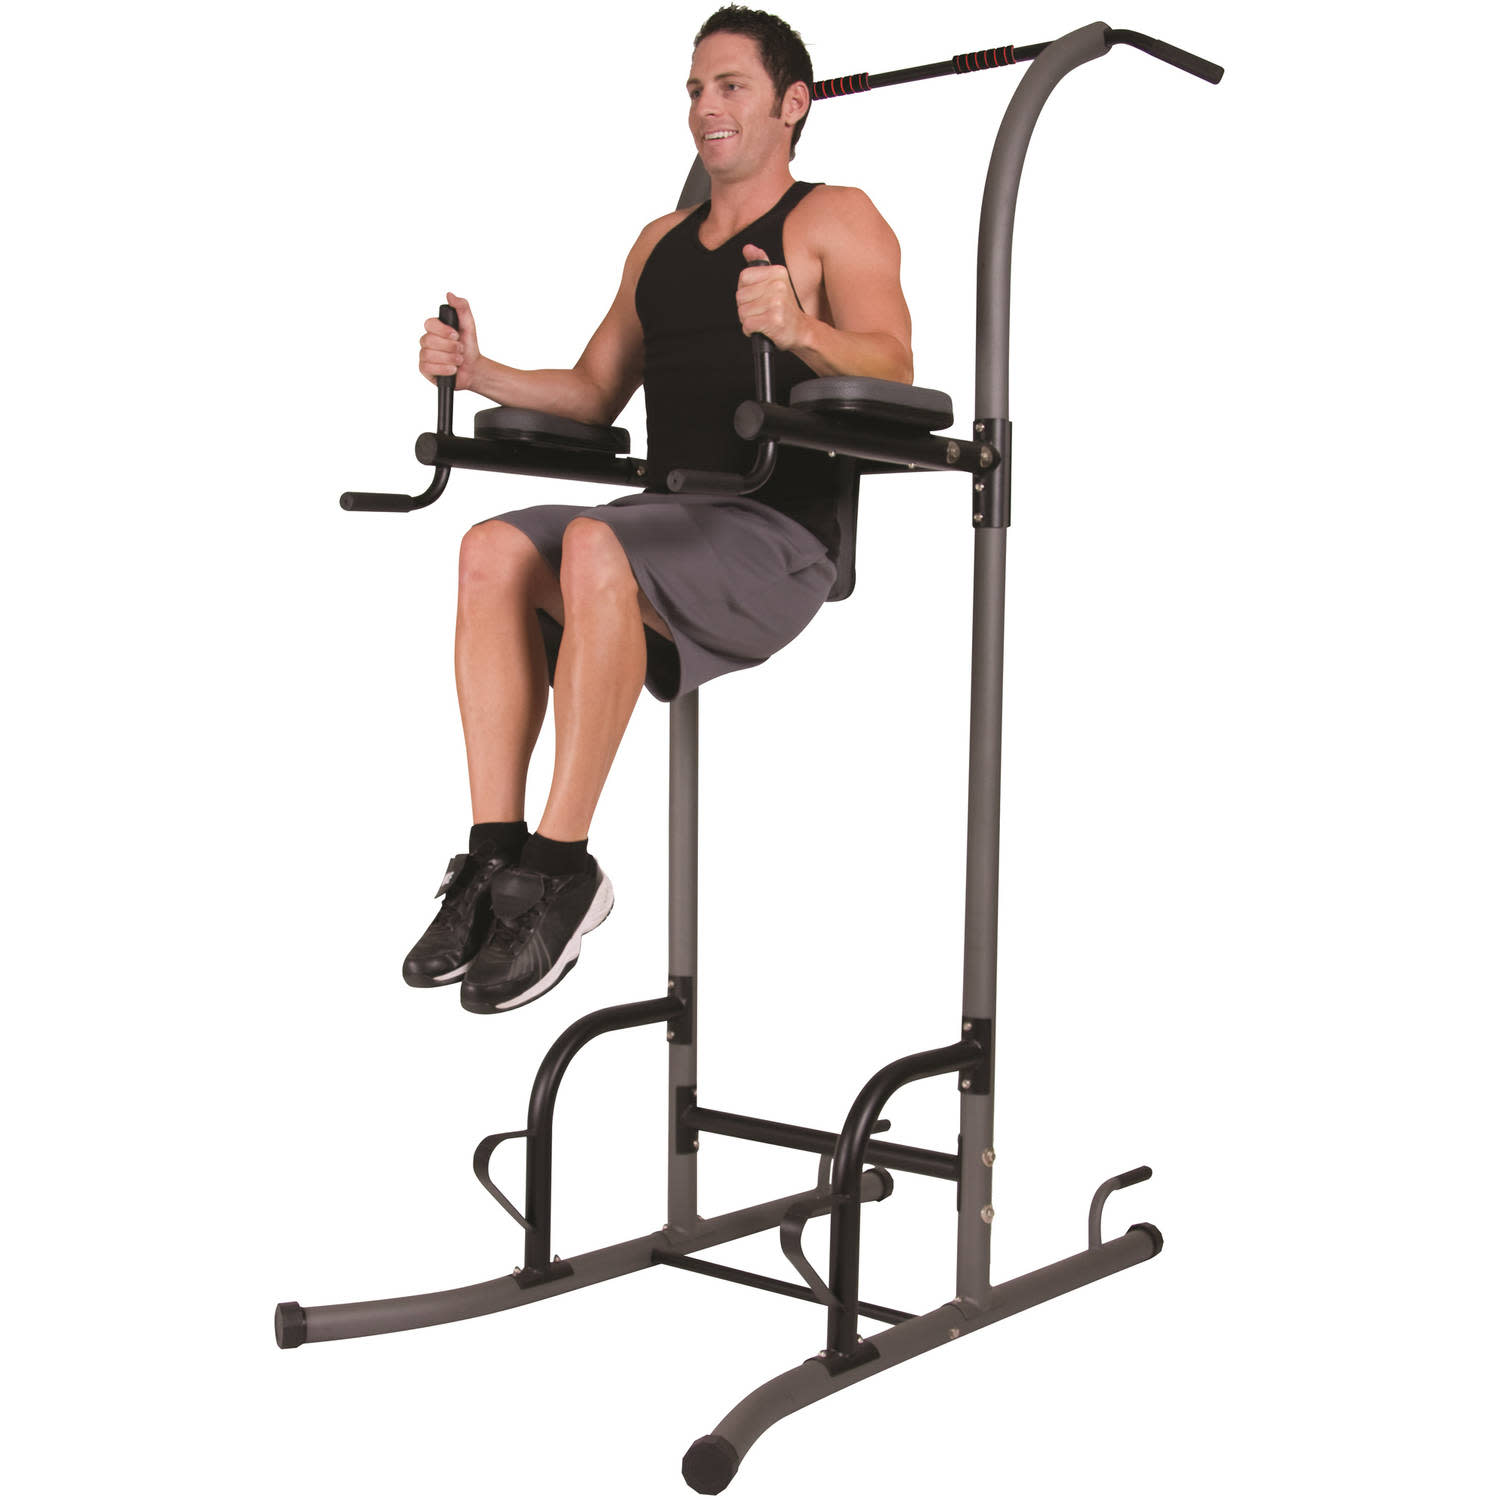 Shop a wide selection of home gyms and home gym equipment at helmbactidi.ga Great prices, best deals and new releases in home gyms. Free shipping and free returns on eligible items.